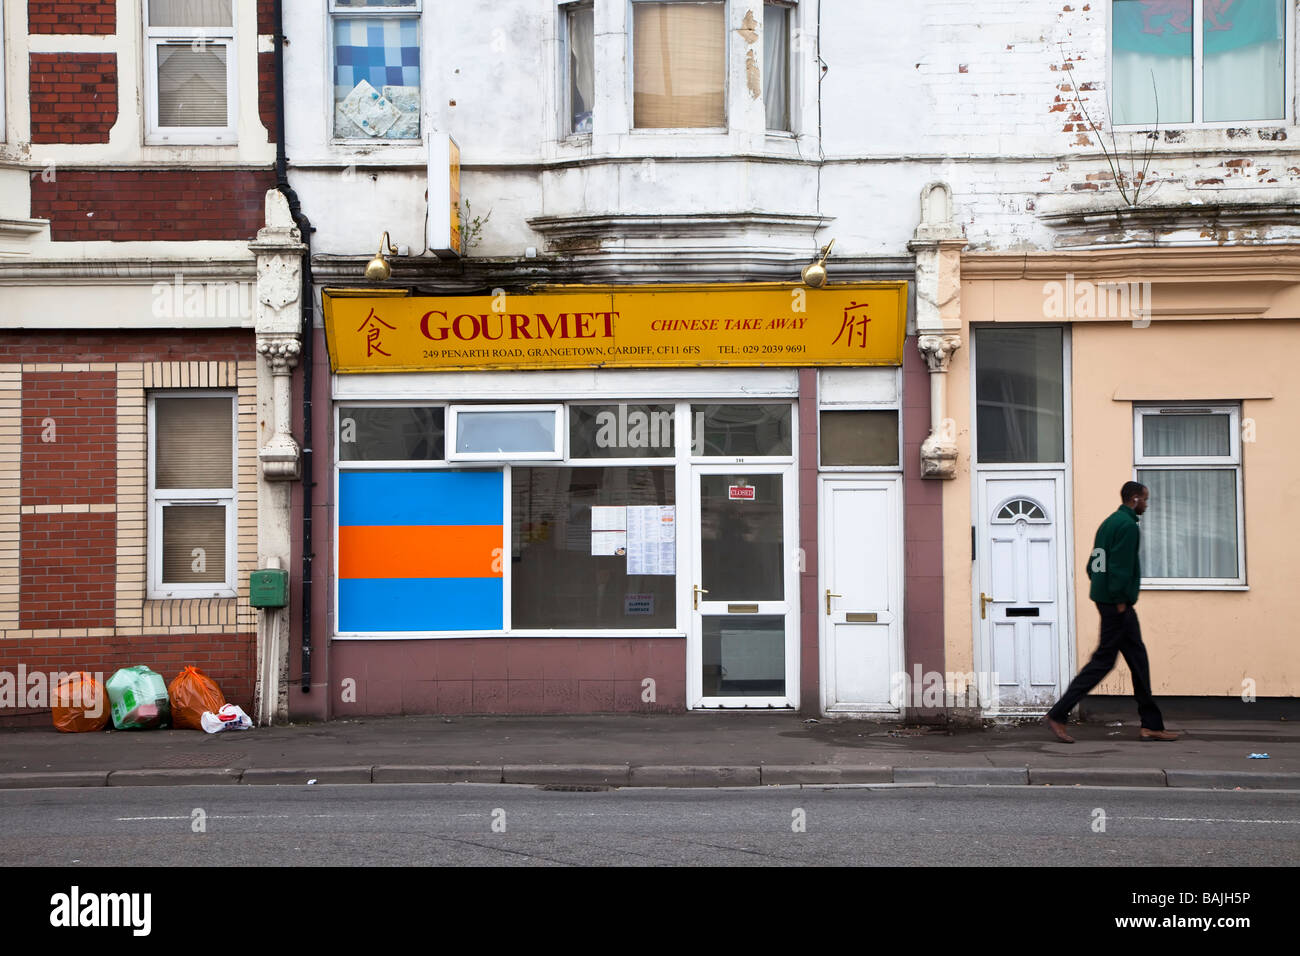 Man walking past Chinese take away shop in run down area of Cardiff Wales UK - Stock Image